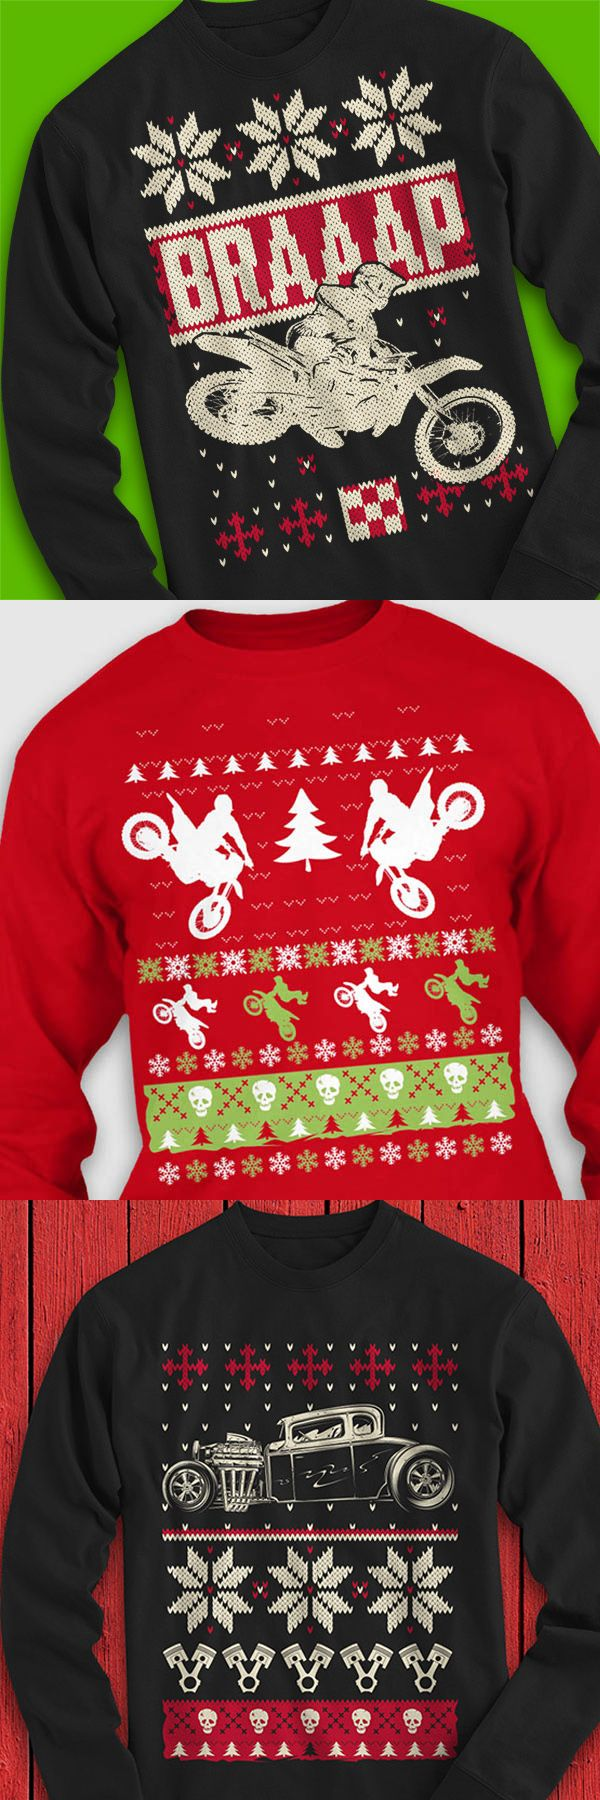 28 Ugly christmas sweater party ideas  CRAFT